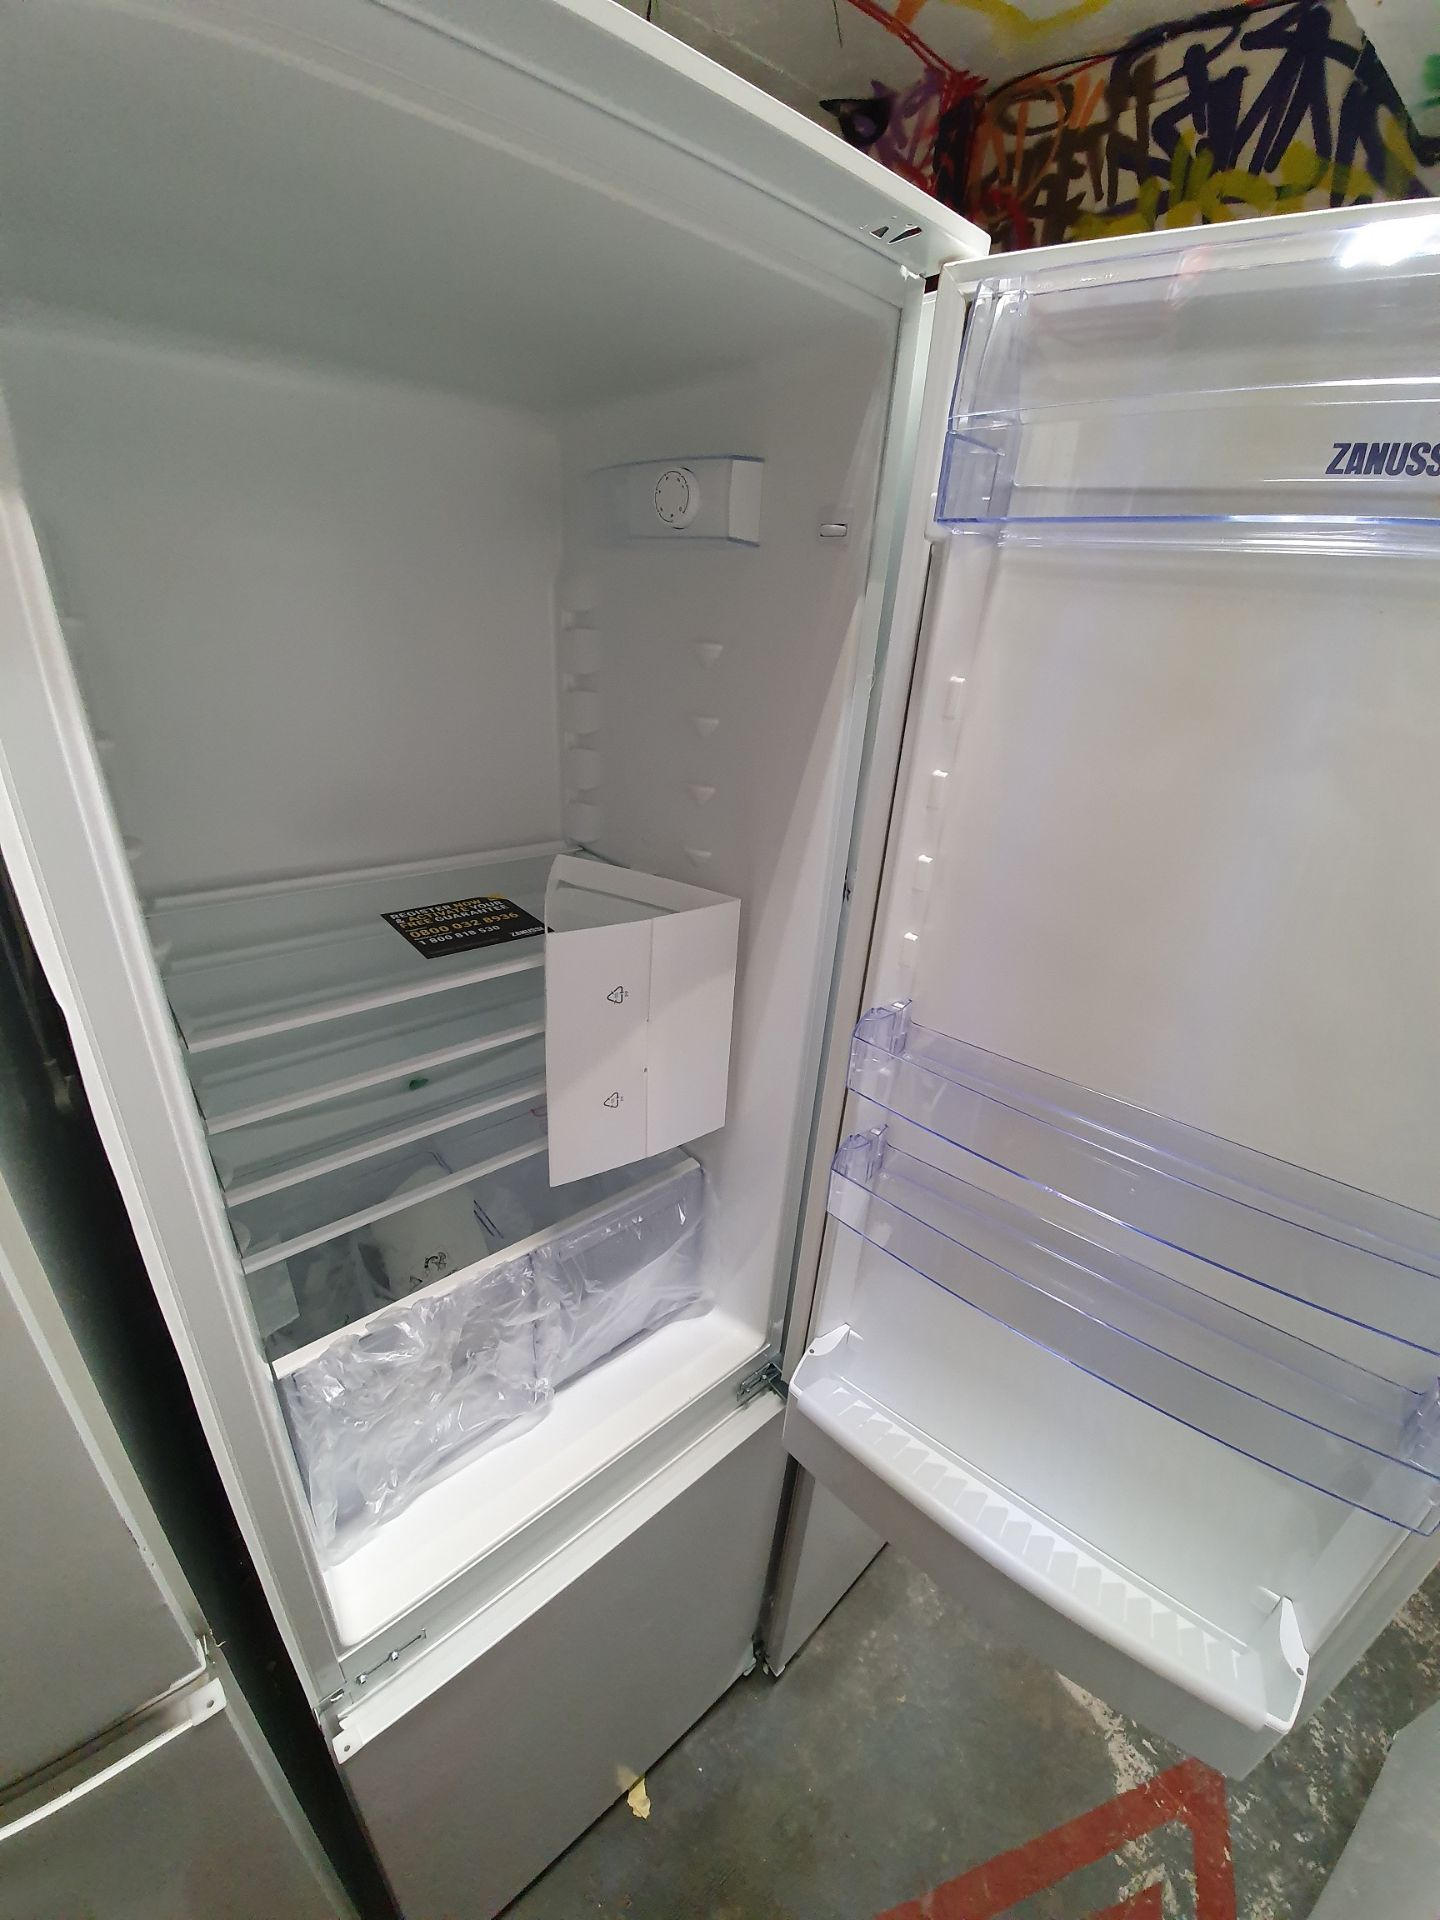 NEW/GRADED AND PACKAGED Prima PRRF208 Tall 177.6cm Integrated Larder Fridge (Slight external - Image 9 of 14